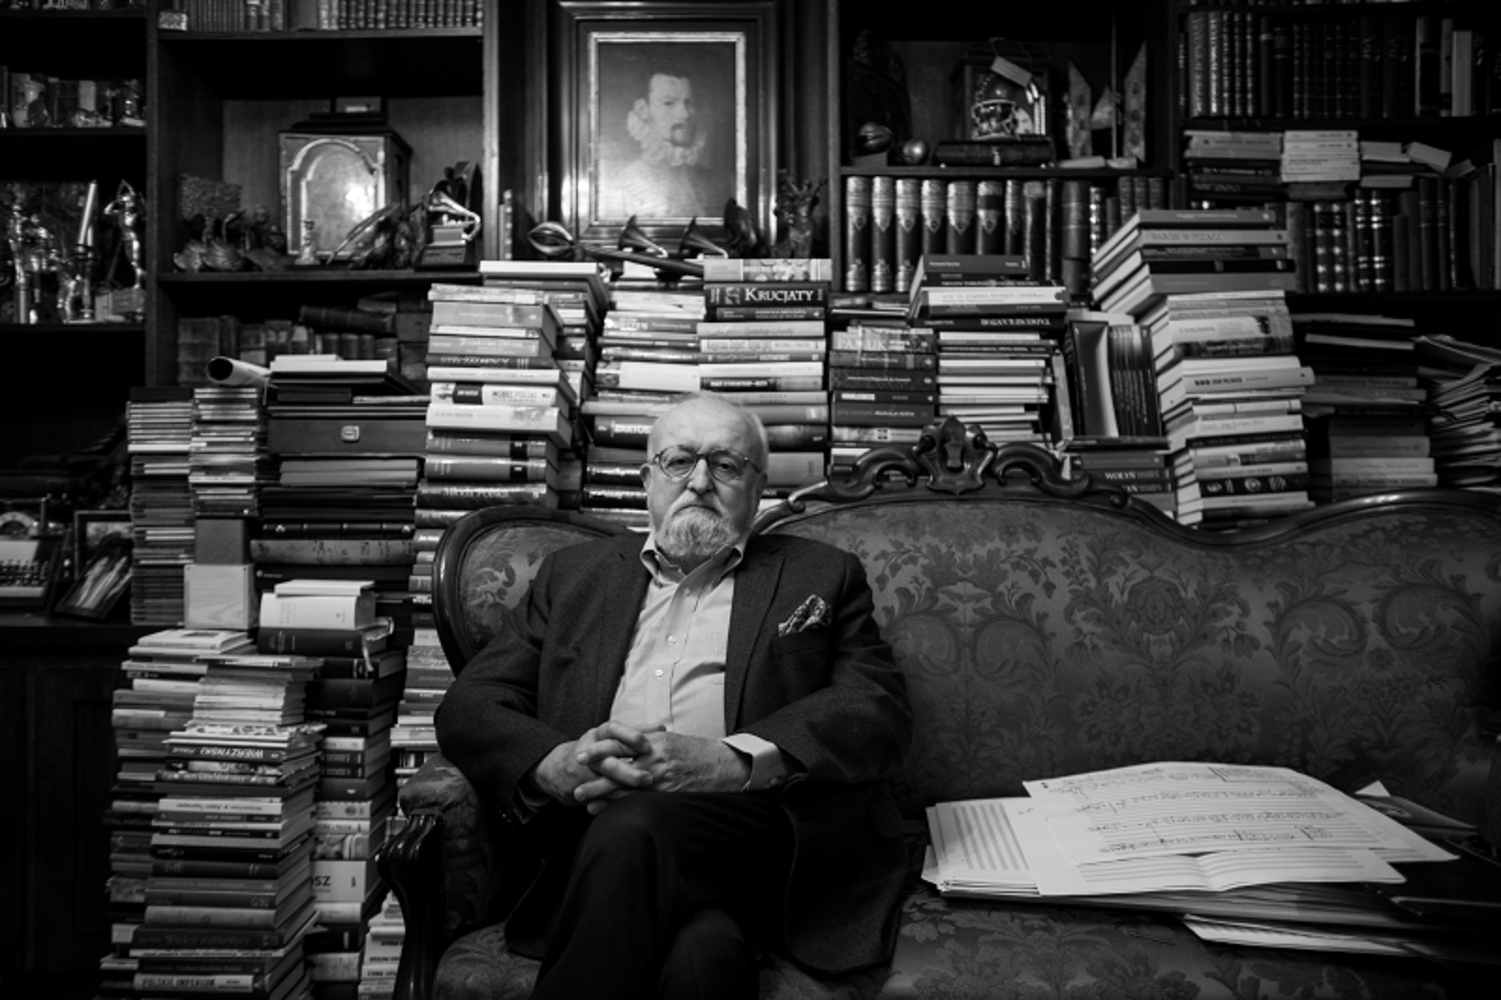 Krzysztof Penderecki sits on a settee surrounded by stacks of books